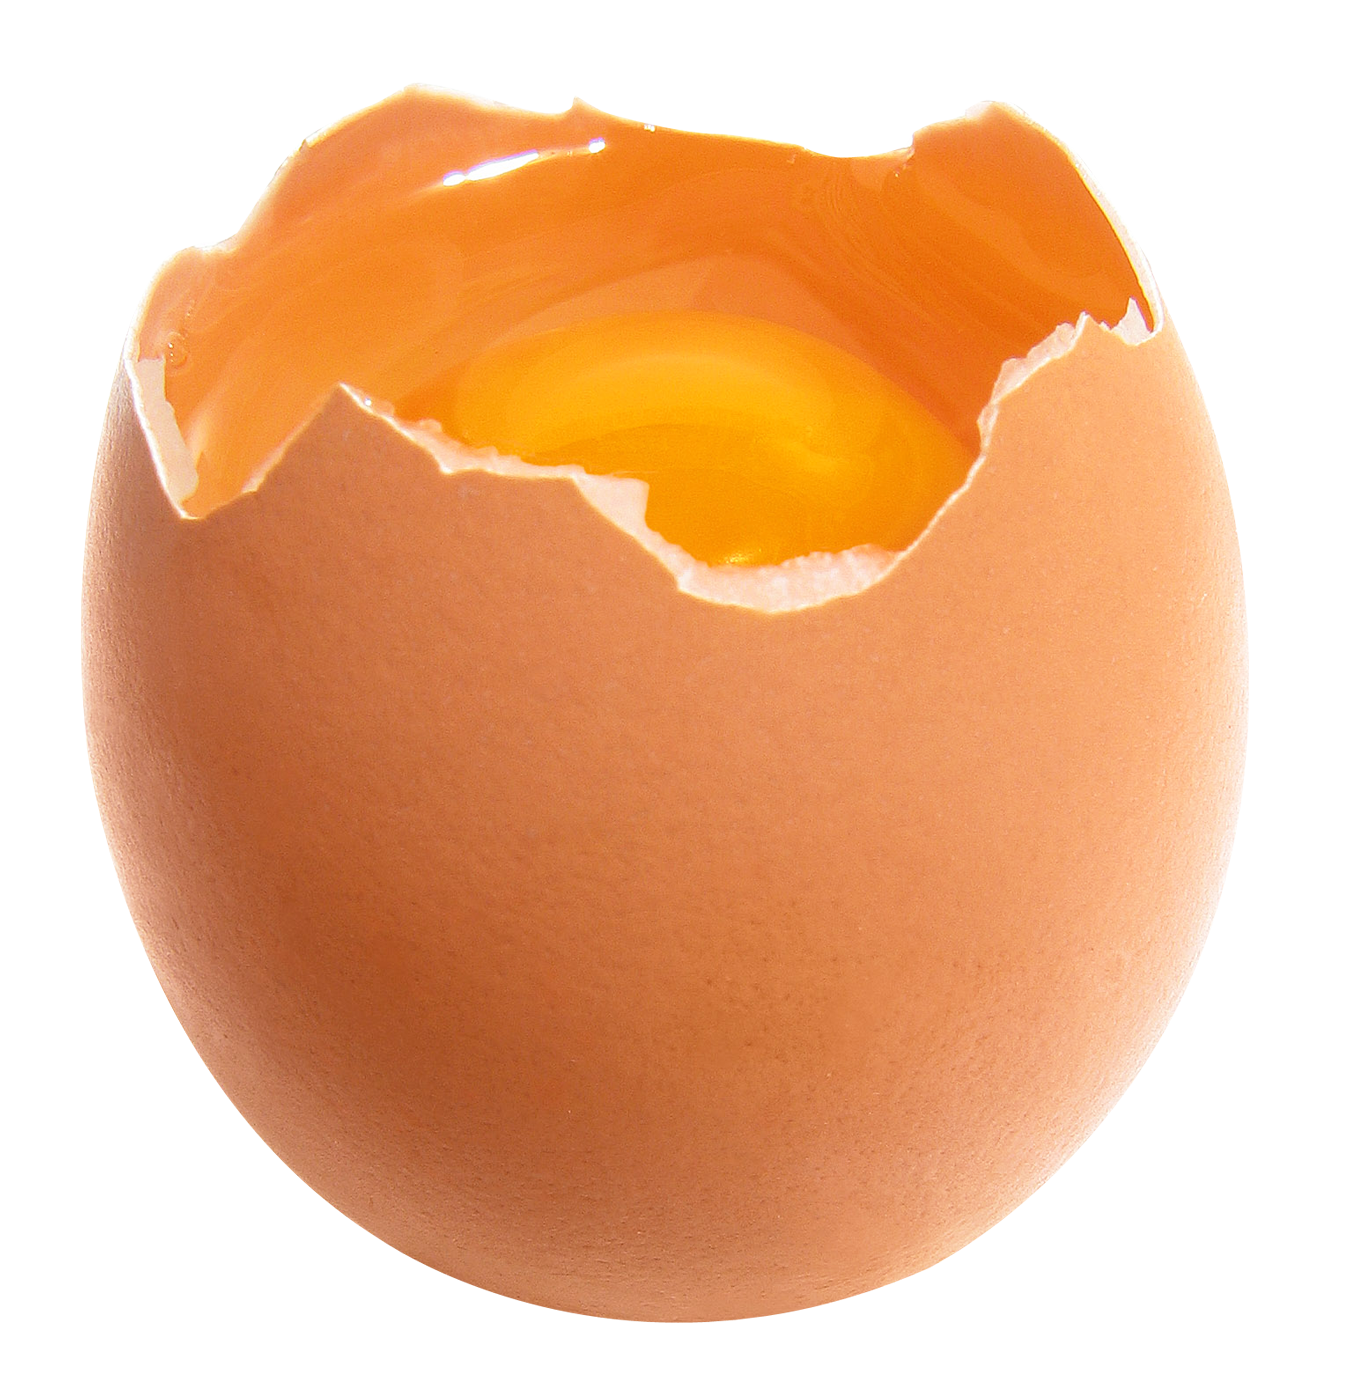 banner freeuse stock Eggs transparent broken. Egg png image purepng